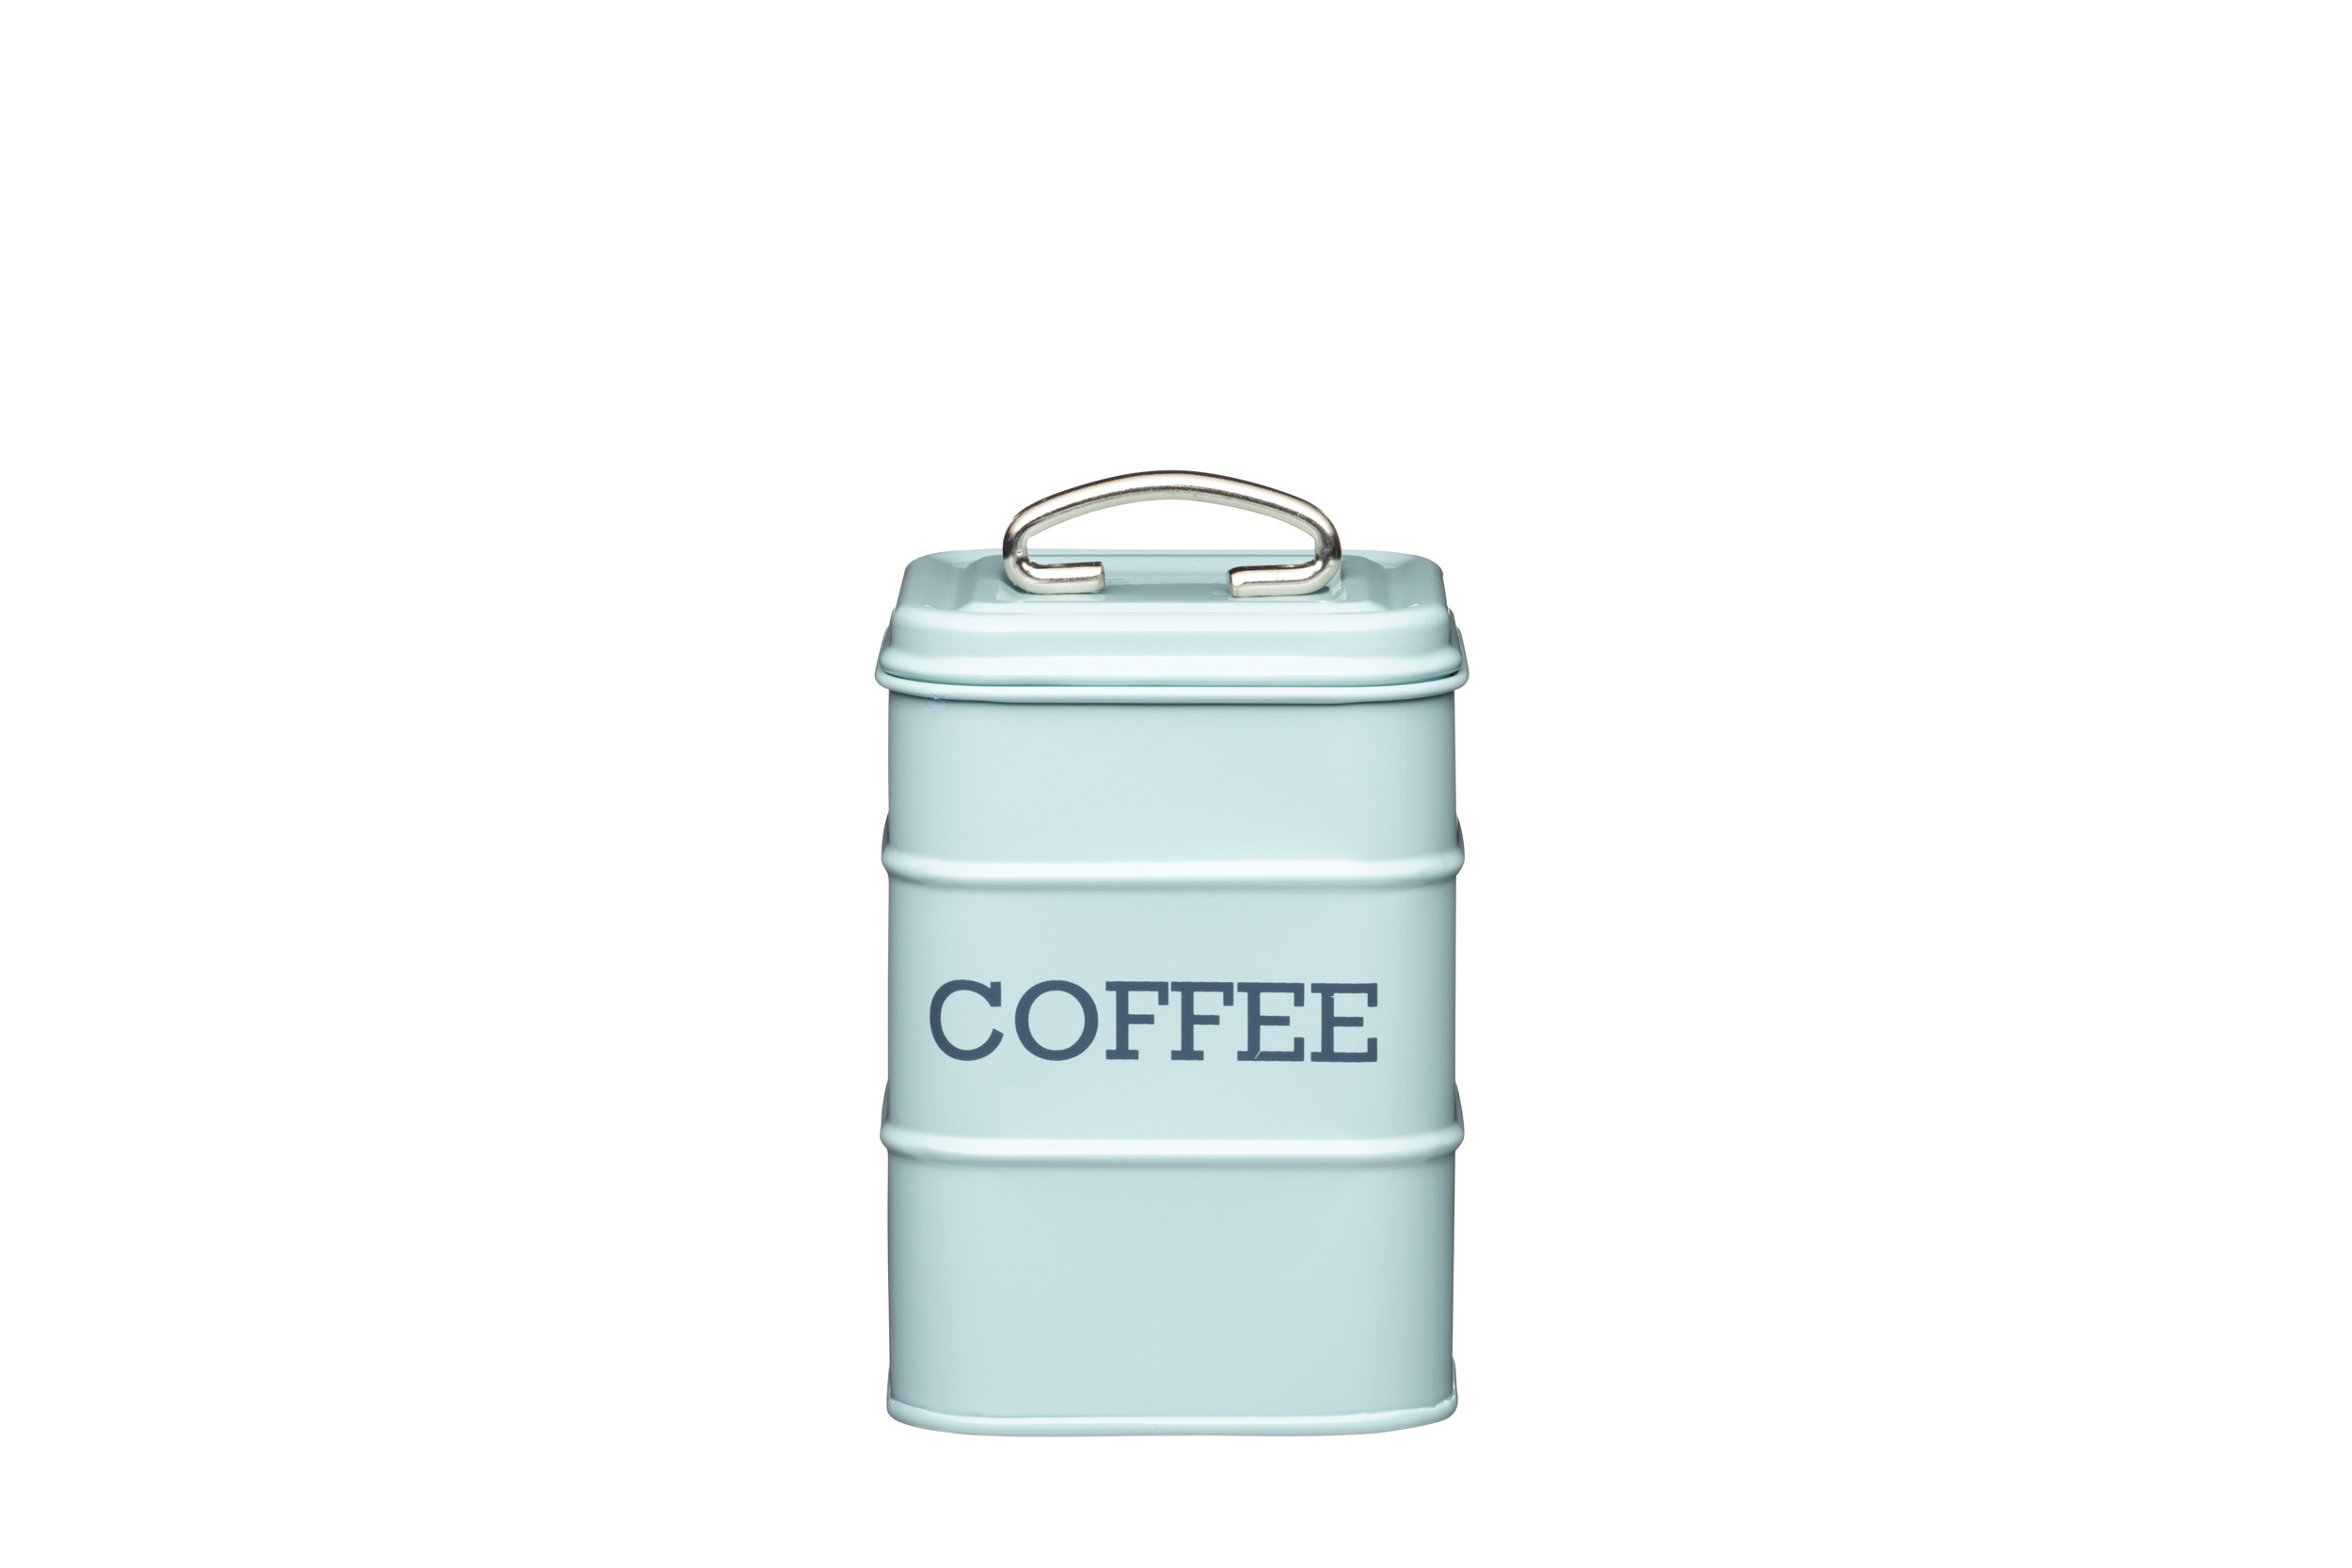 Kitchen Craft Living Nostalgia Coffee Canister Blue 11cm X 17cm